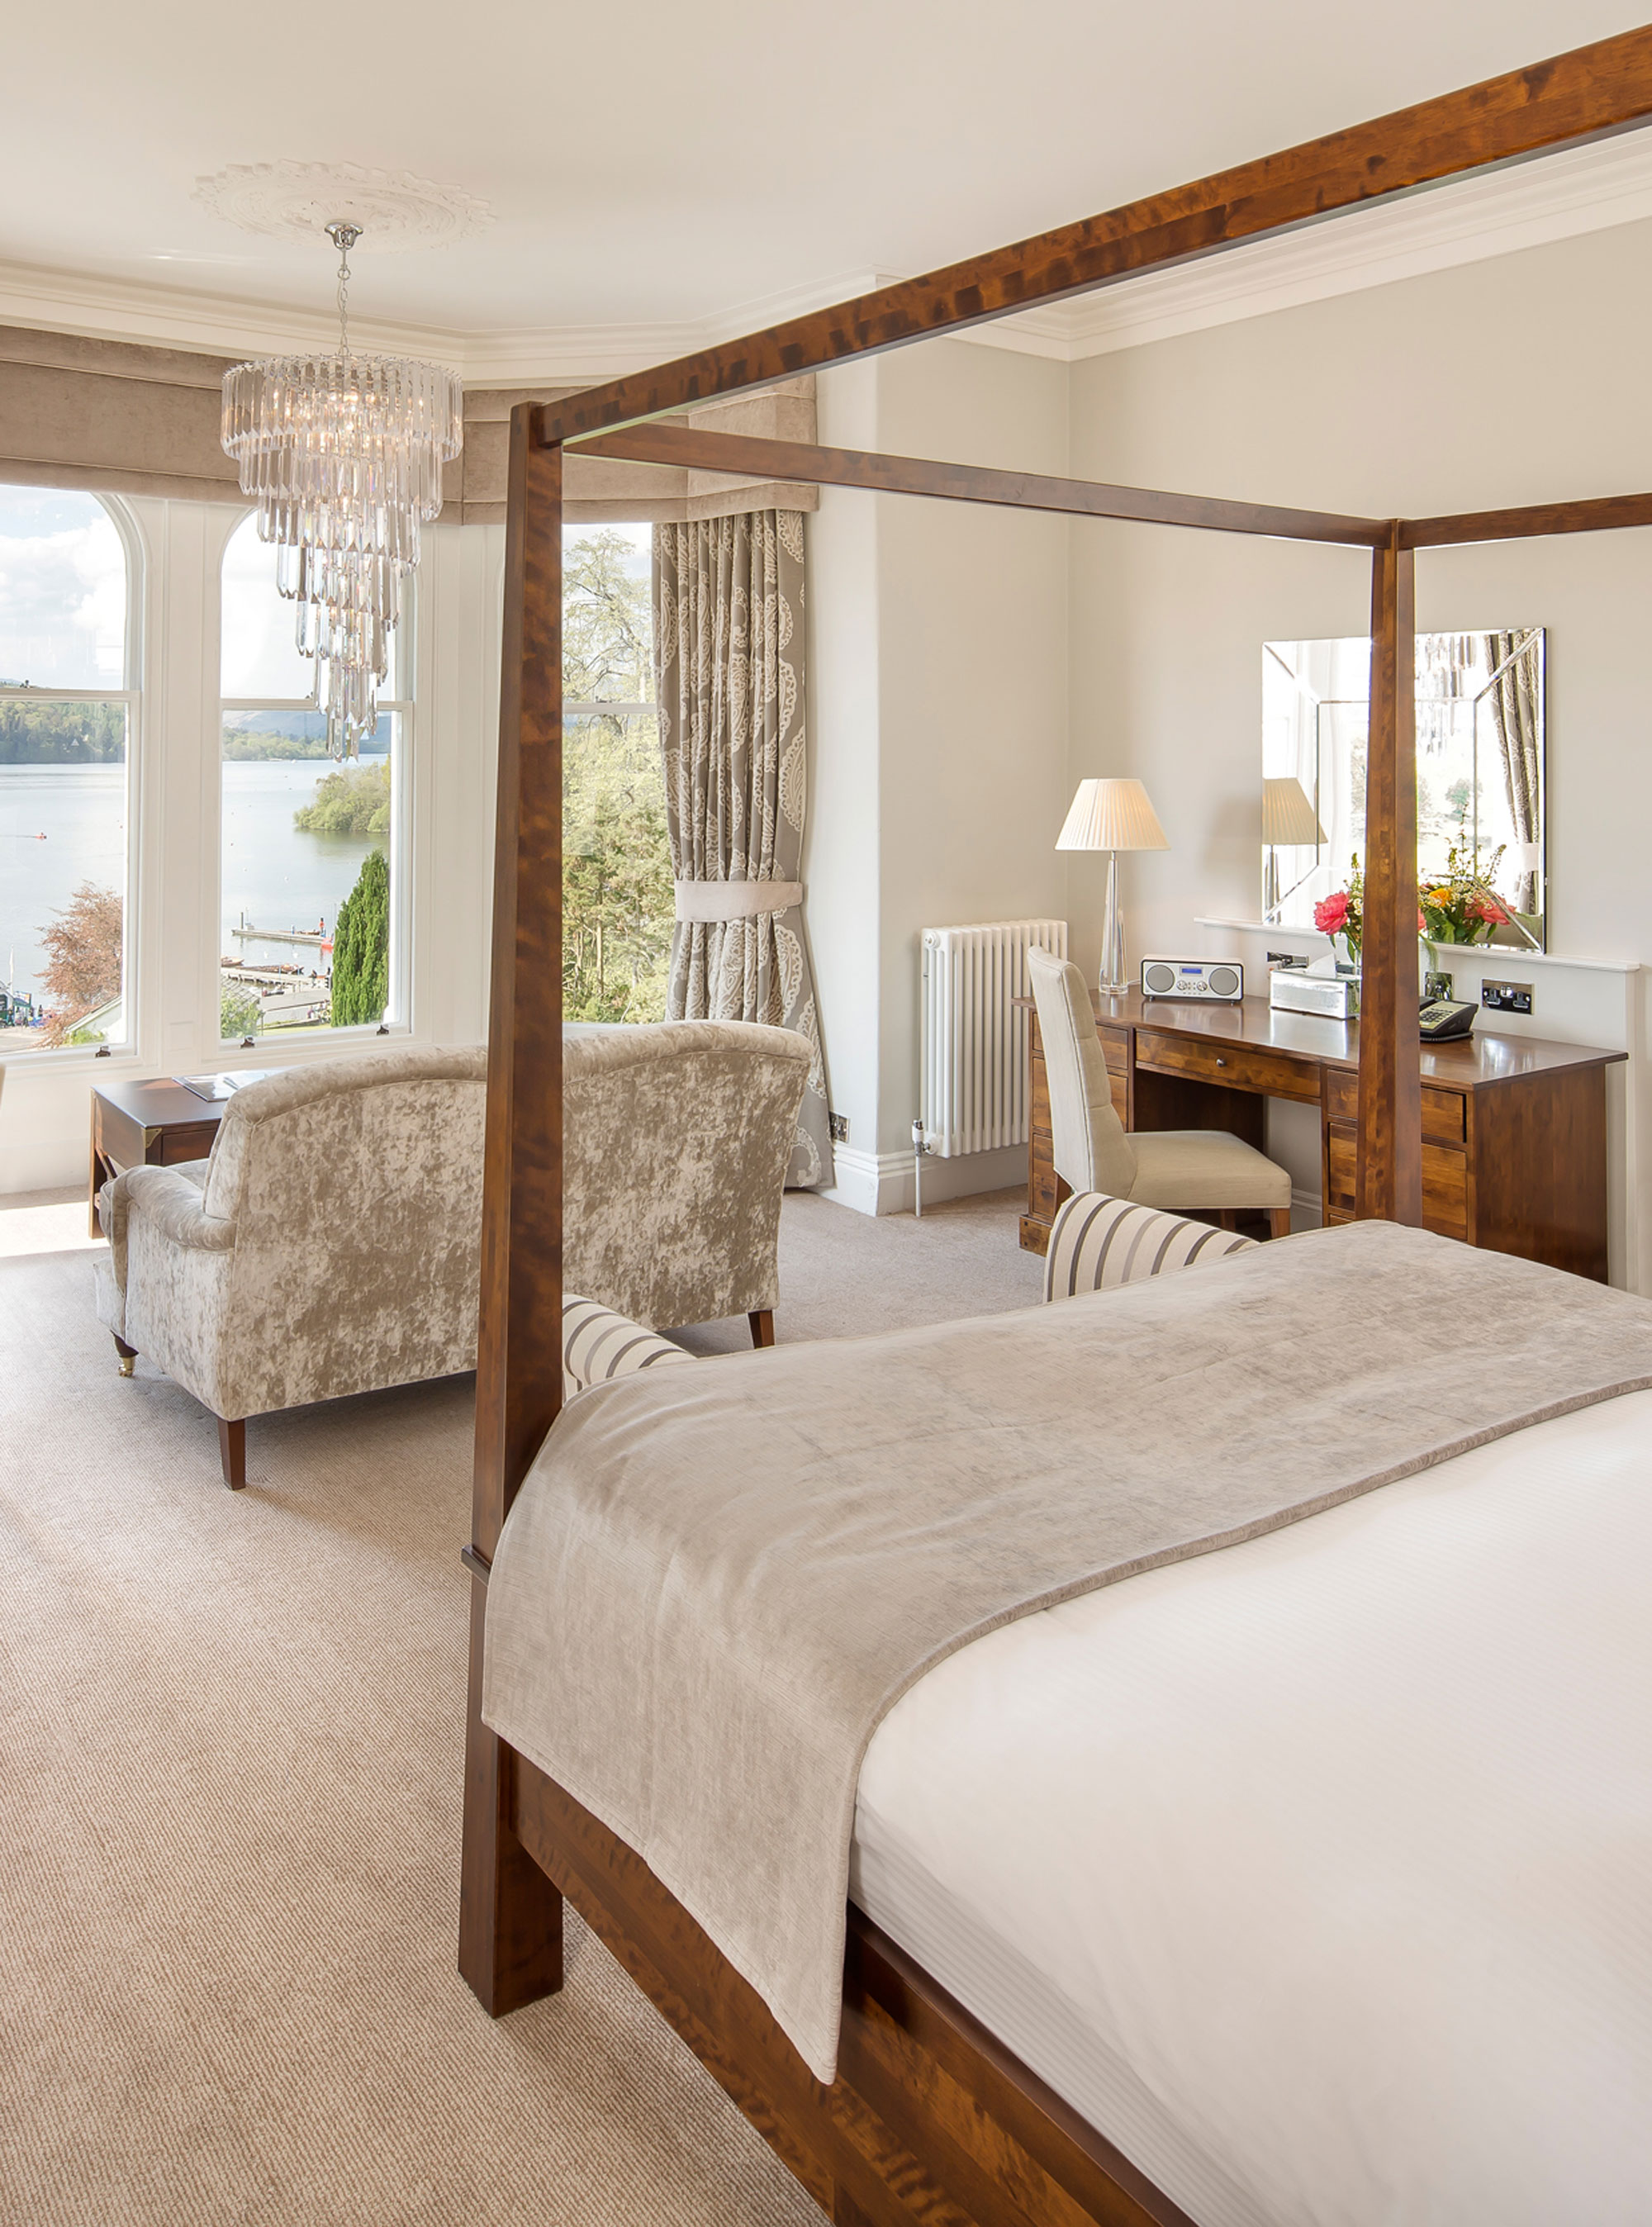 Laura Ashley Bedroom Furniture The Lake District Laura Ashleys The Belsfield Hotel Woman And Home